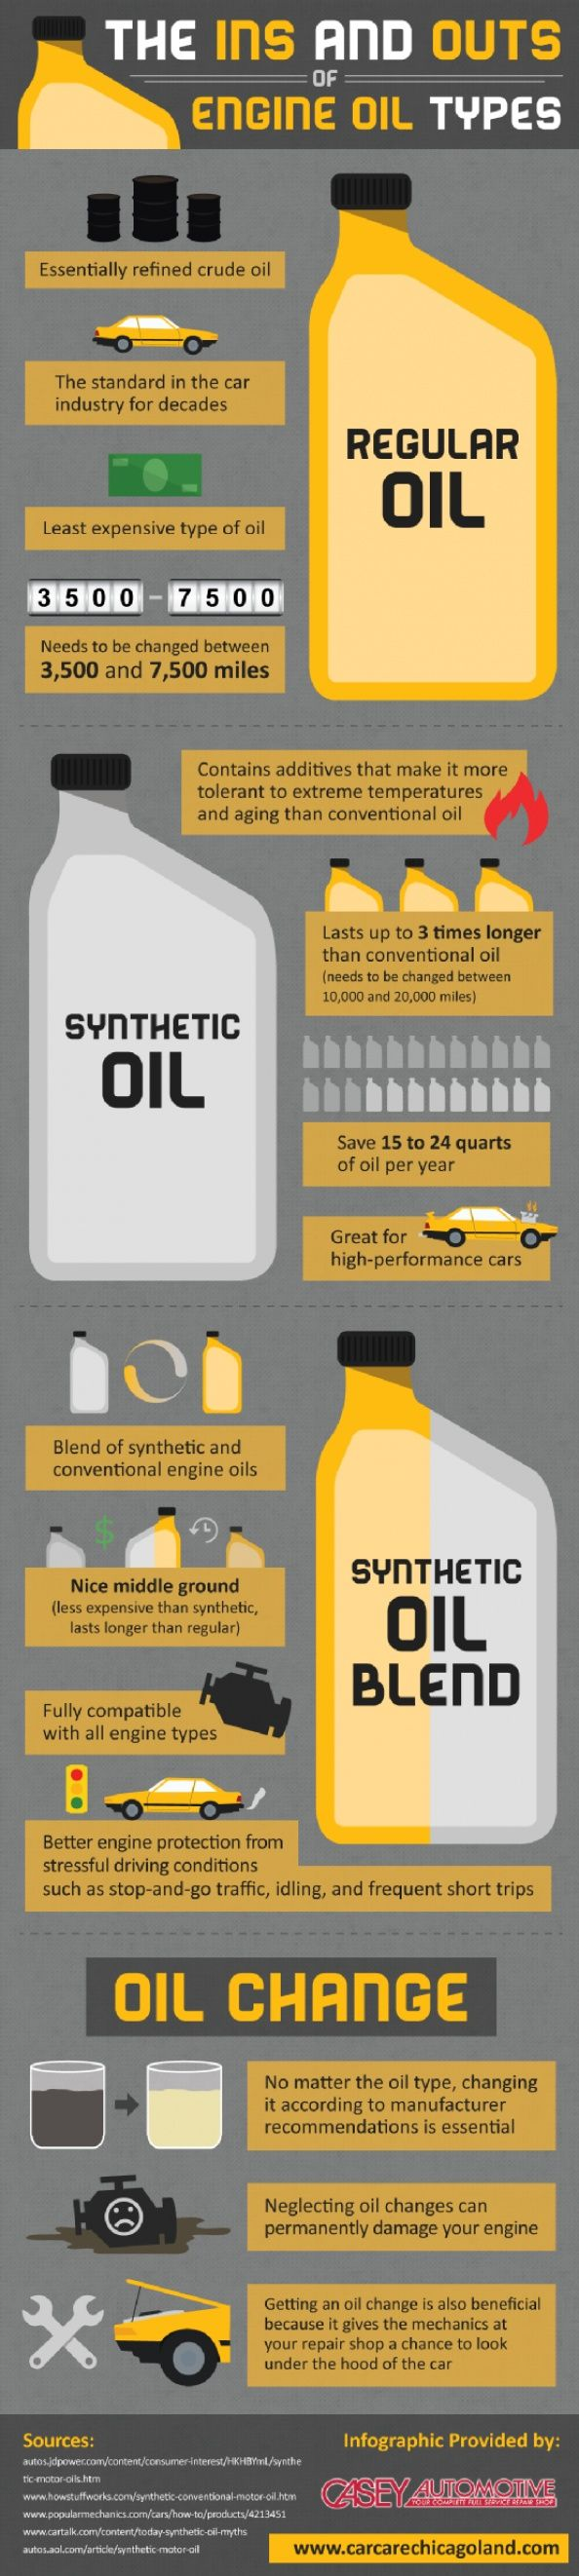 The Ins and Outs of Engine Oil Types | Visual.ly - http://automotiveguideto.com/around-the-web/the-ins-and-outs-of-engine-oil-types-visual-ly/  Visit http://automotiveguideto.com to read more on this topic